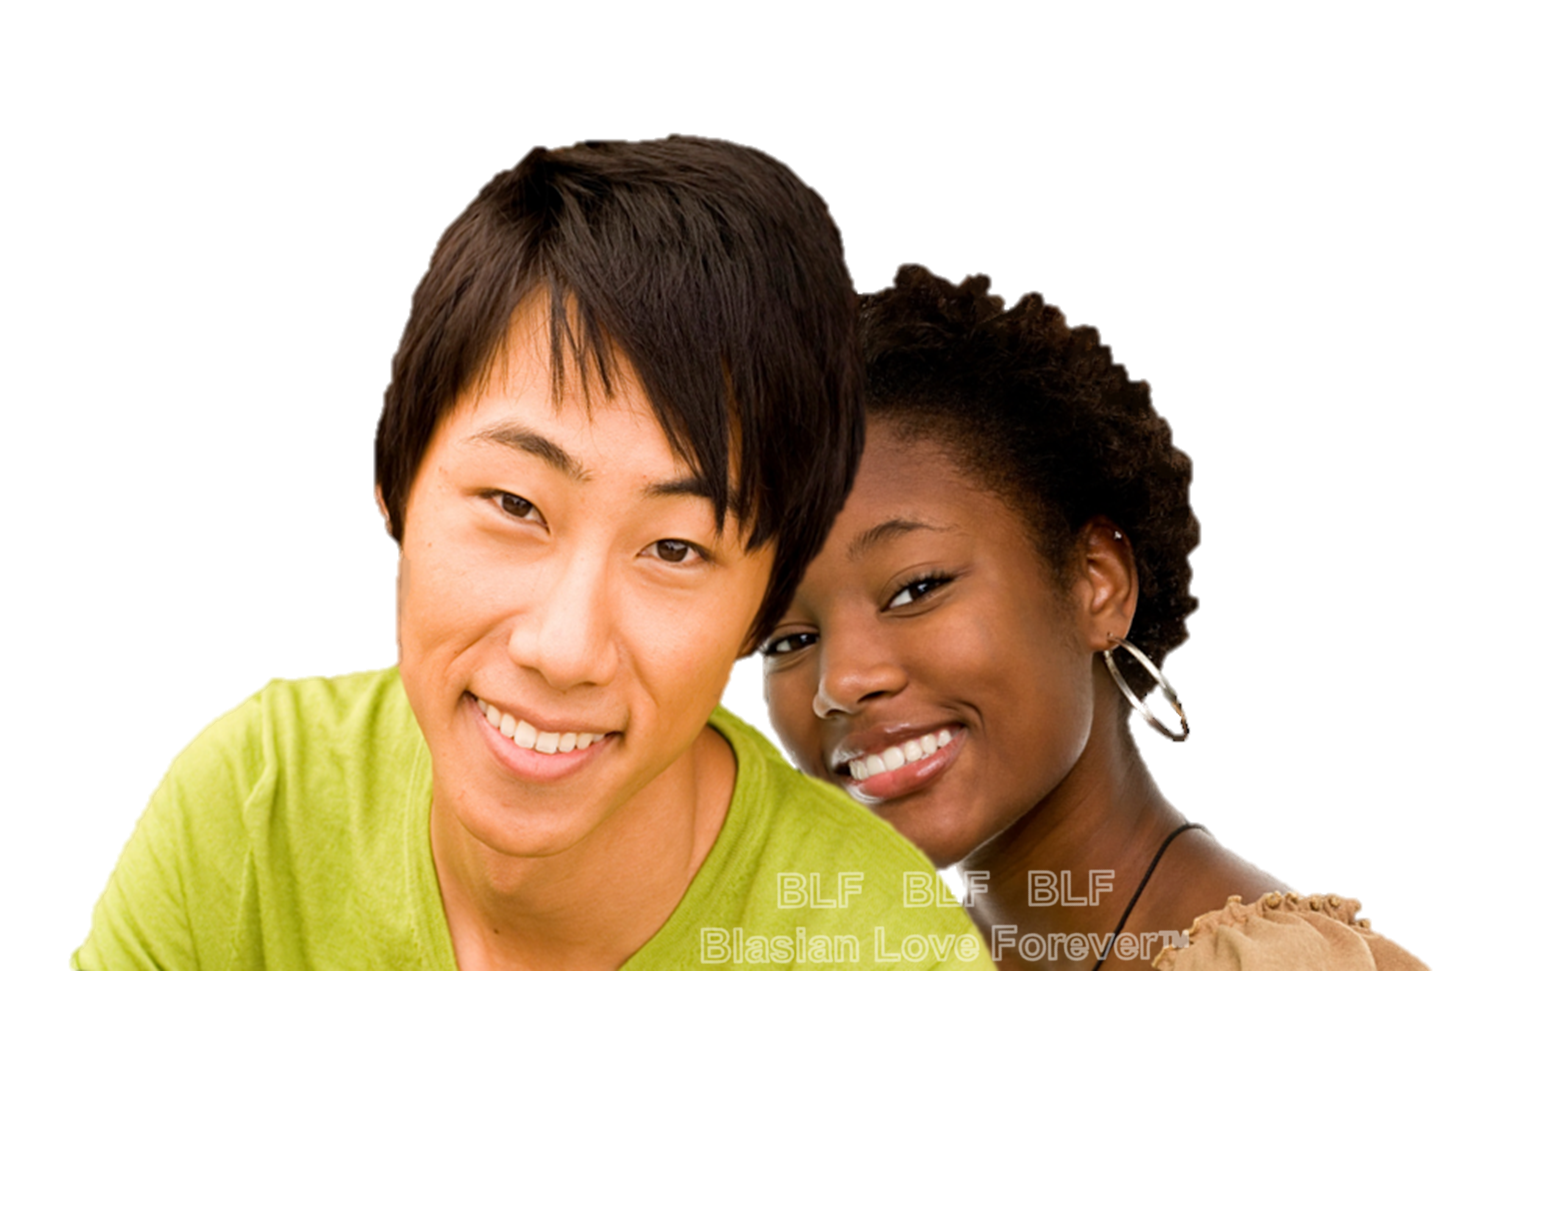 asian singles in mount sterling Browse profiles & photos of catholic singles kentucky mount sterling catholic women asian black hispanic conservative liberal traditional charismatic senior.